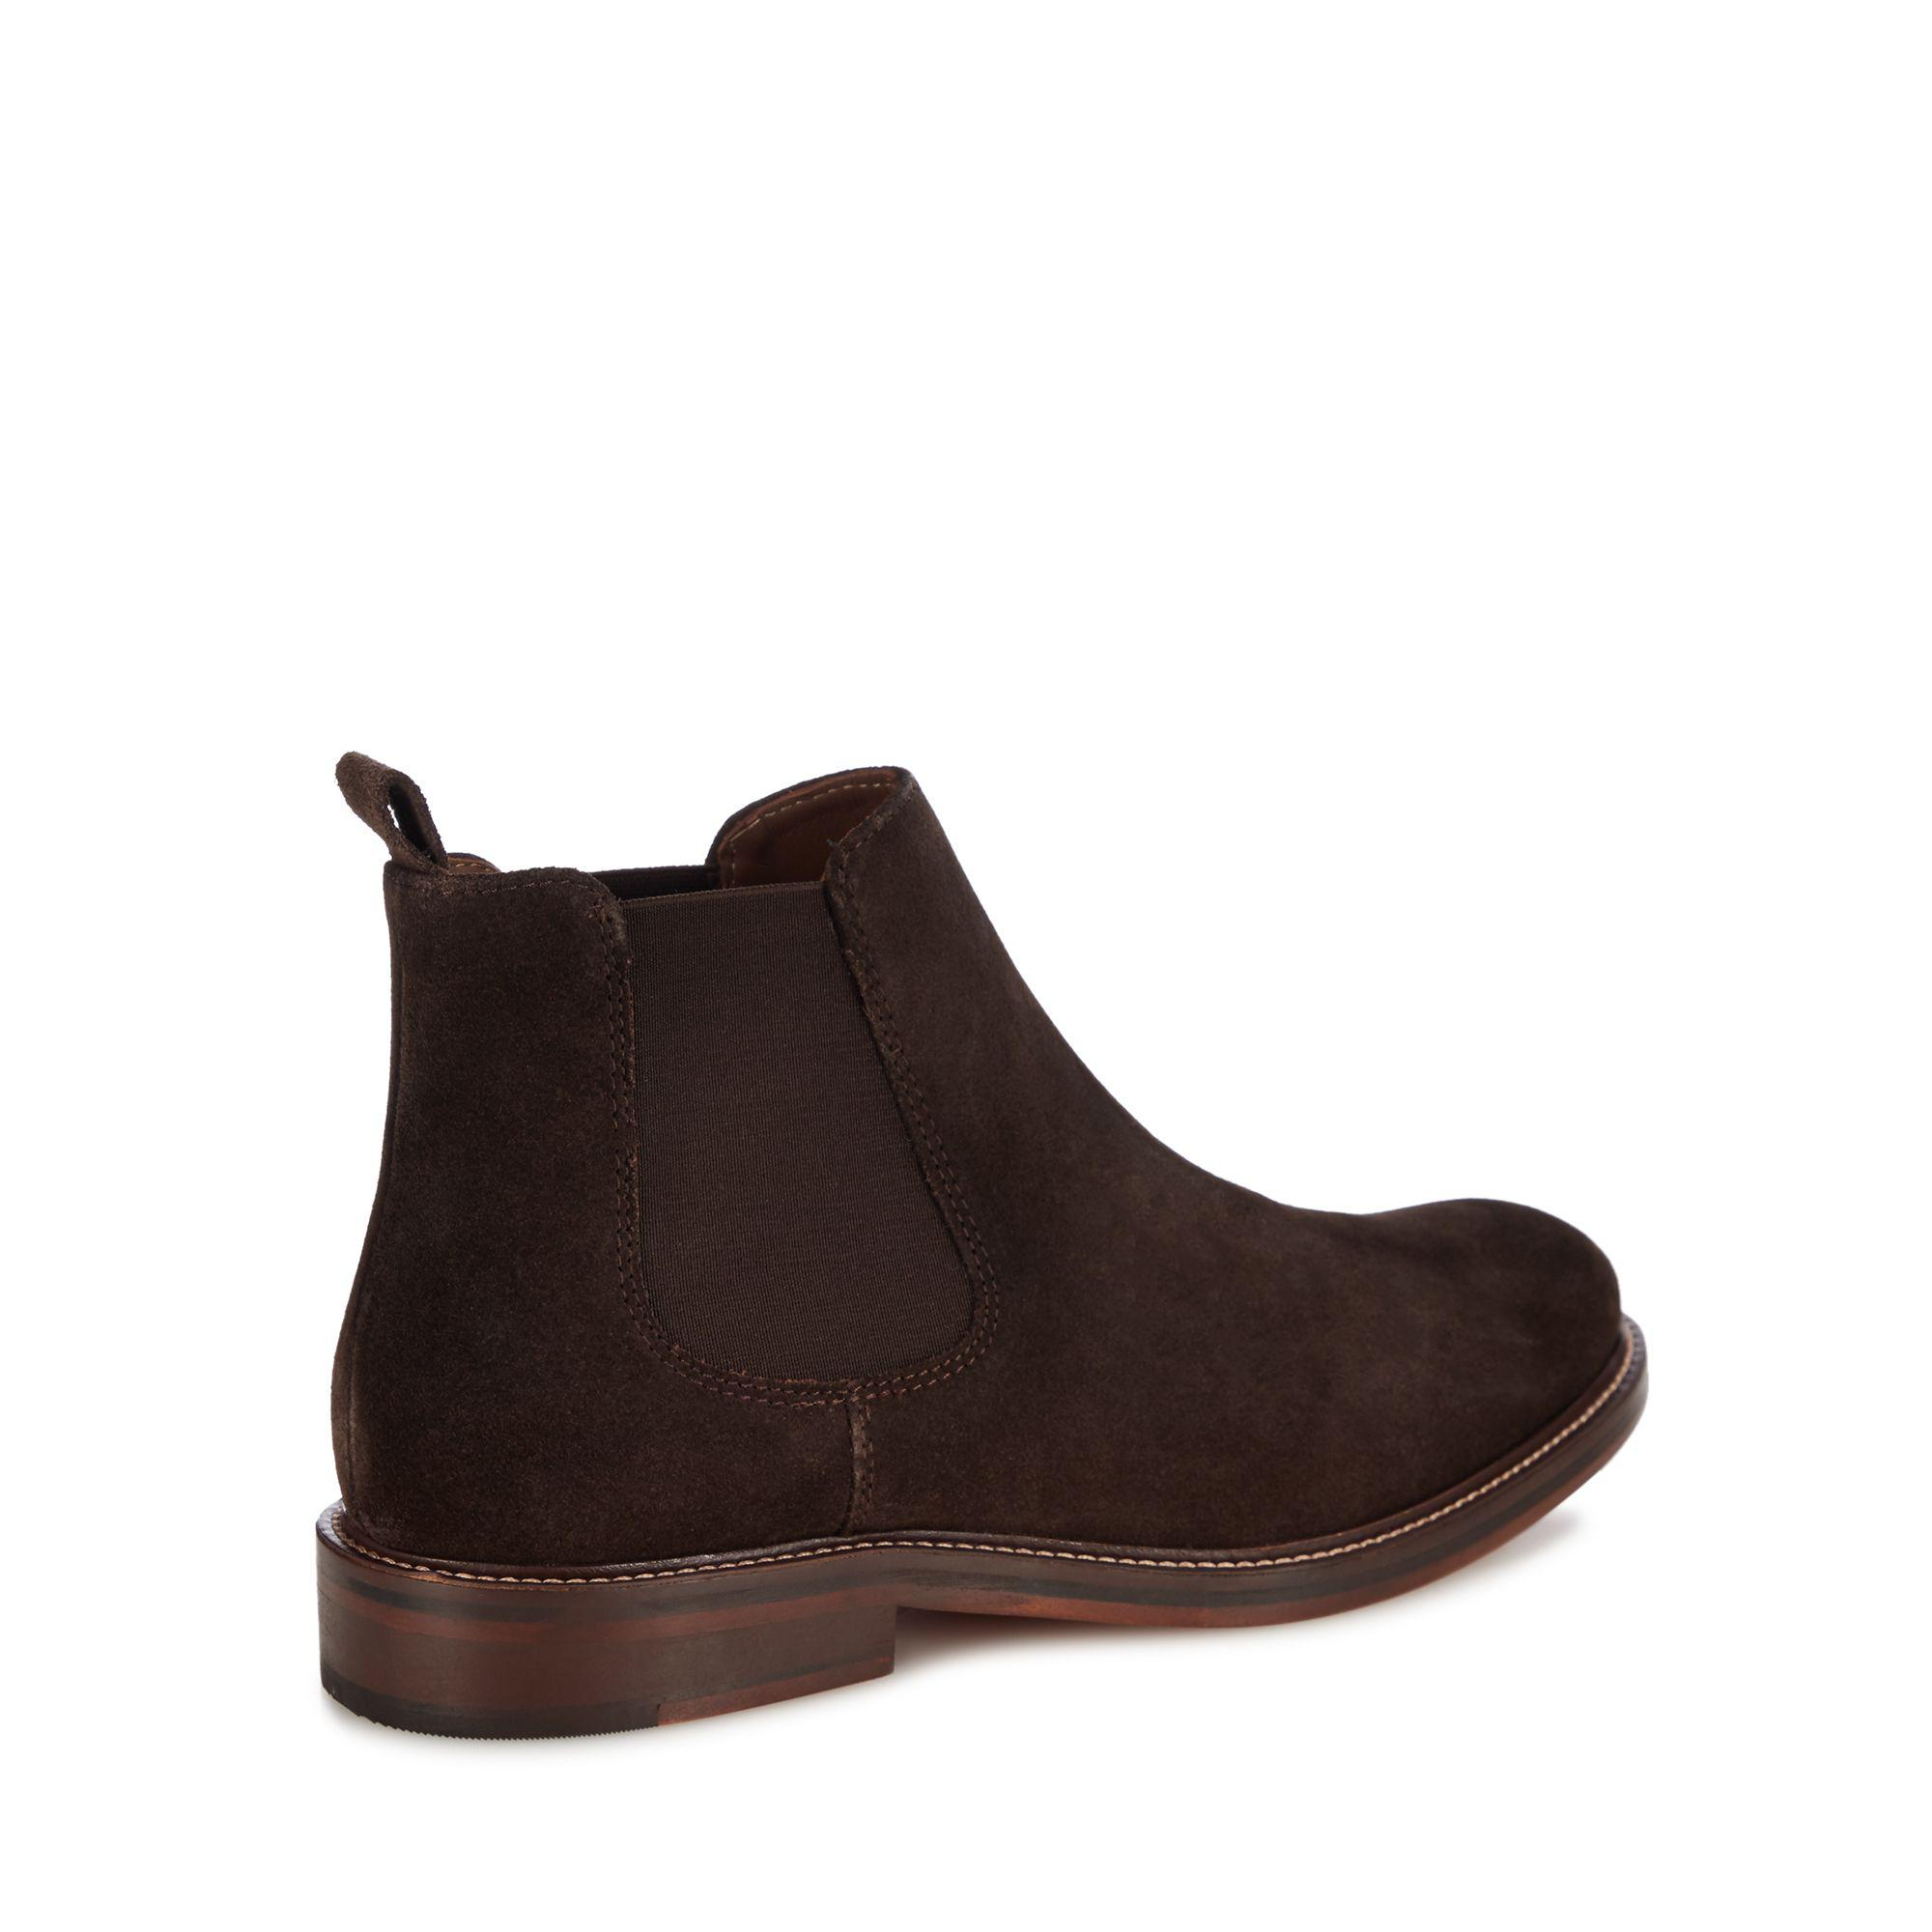 43bd6c069f3 J By Jasper Conran - Chocolate Brown Suede  parma  Chelsea Boots for Men -.  View fullscreen